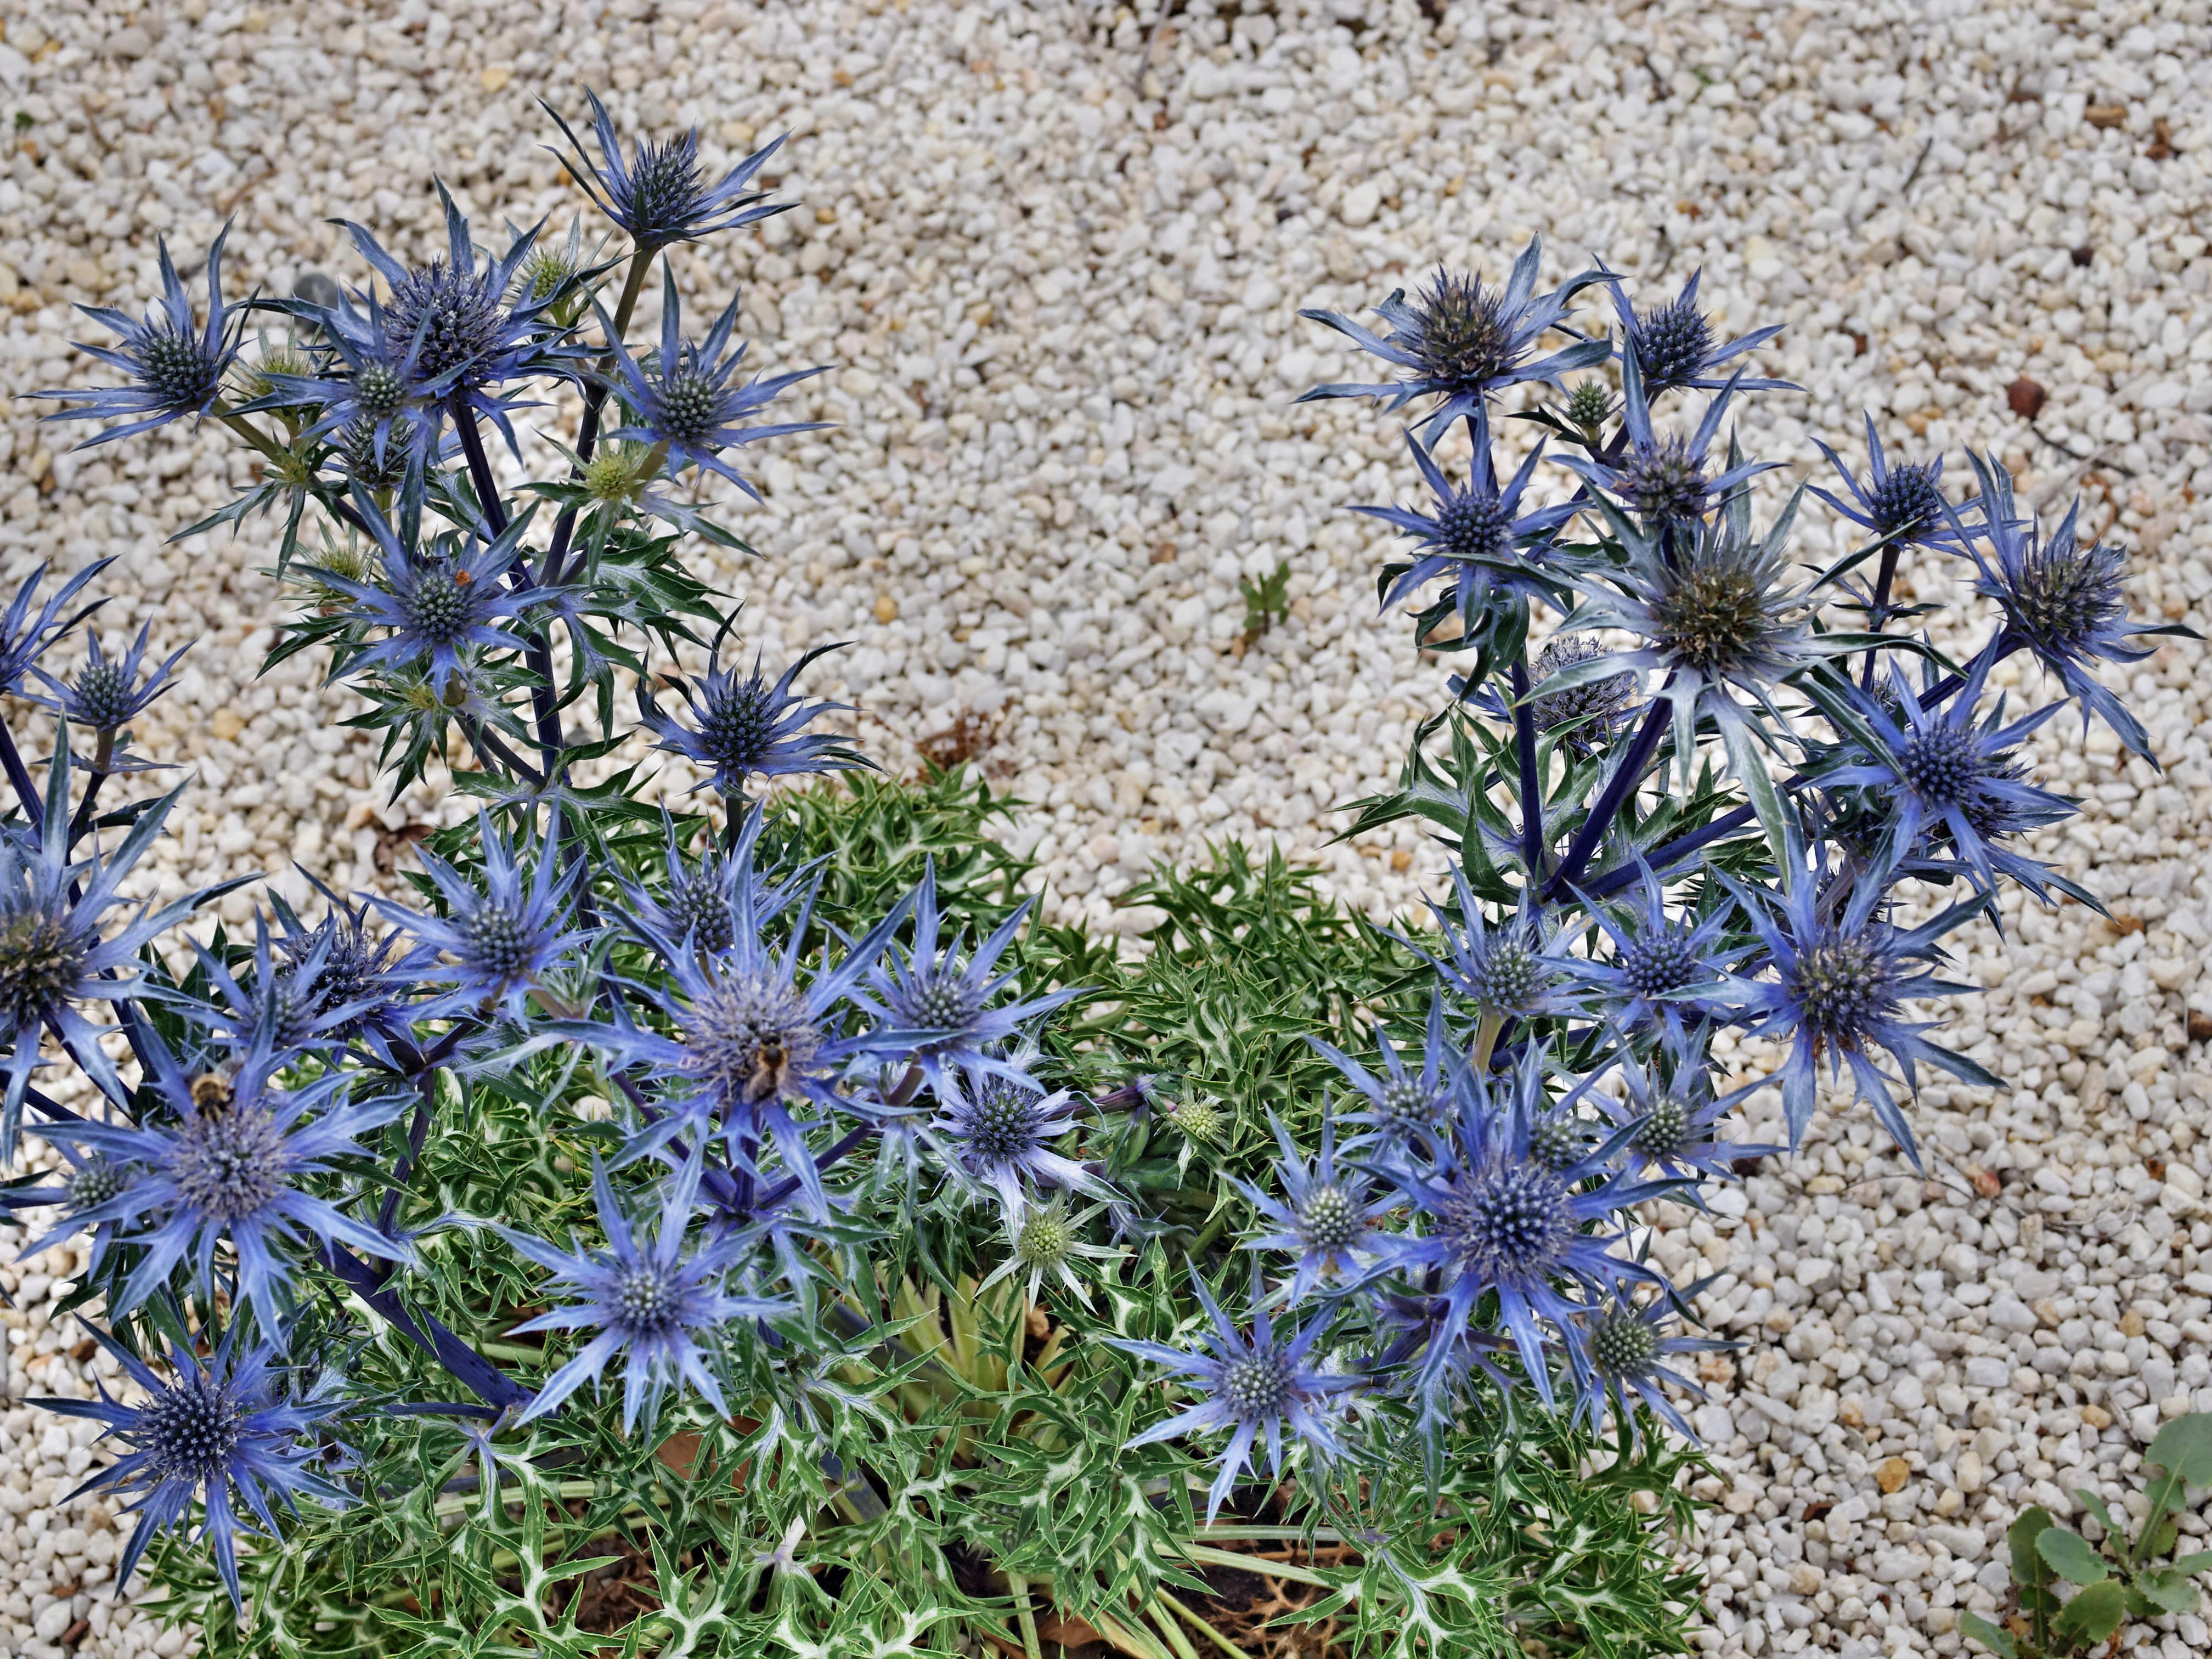 This should be Eryngium-bourgatii.jpeg.  Is it missing?